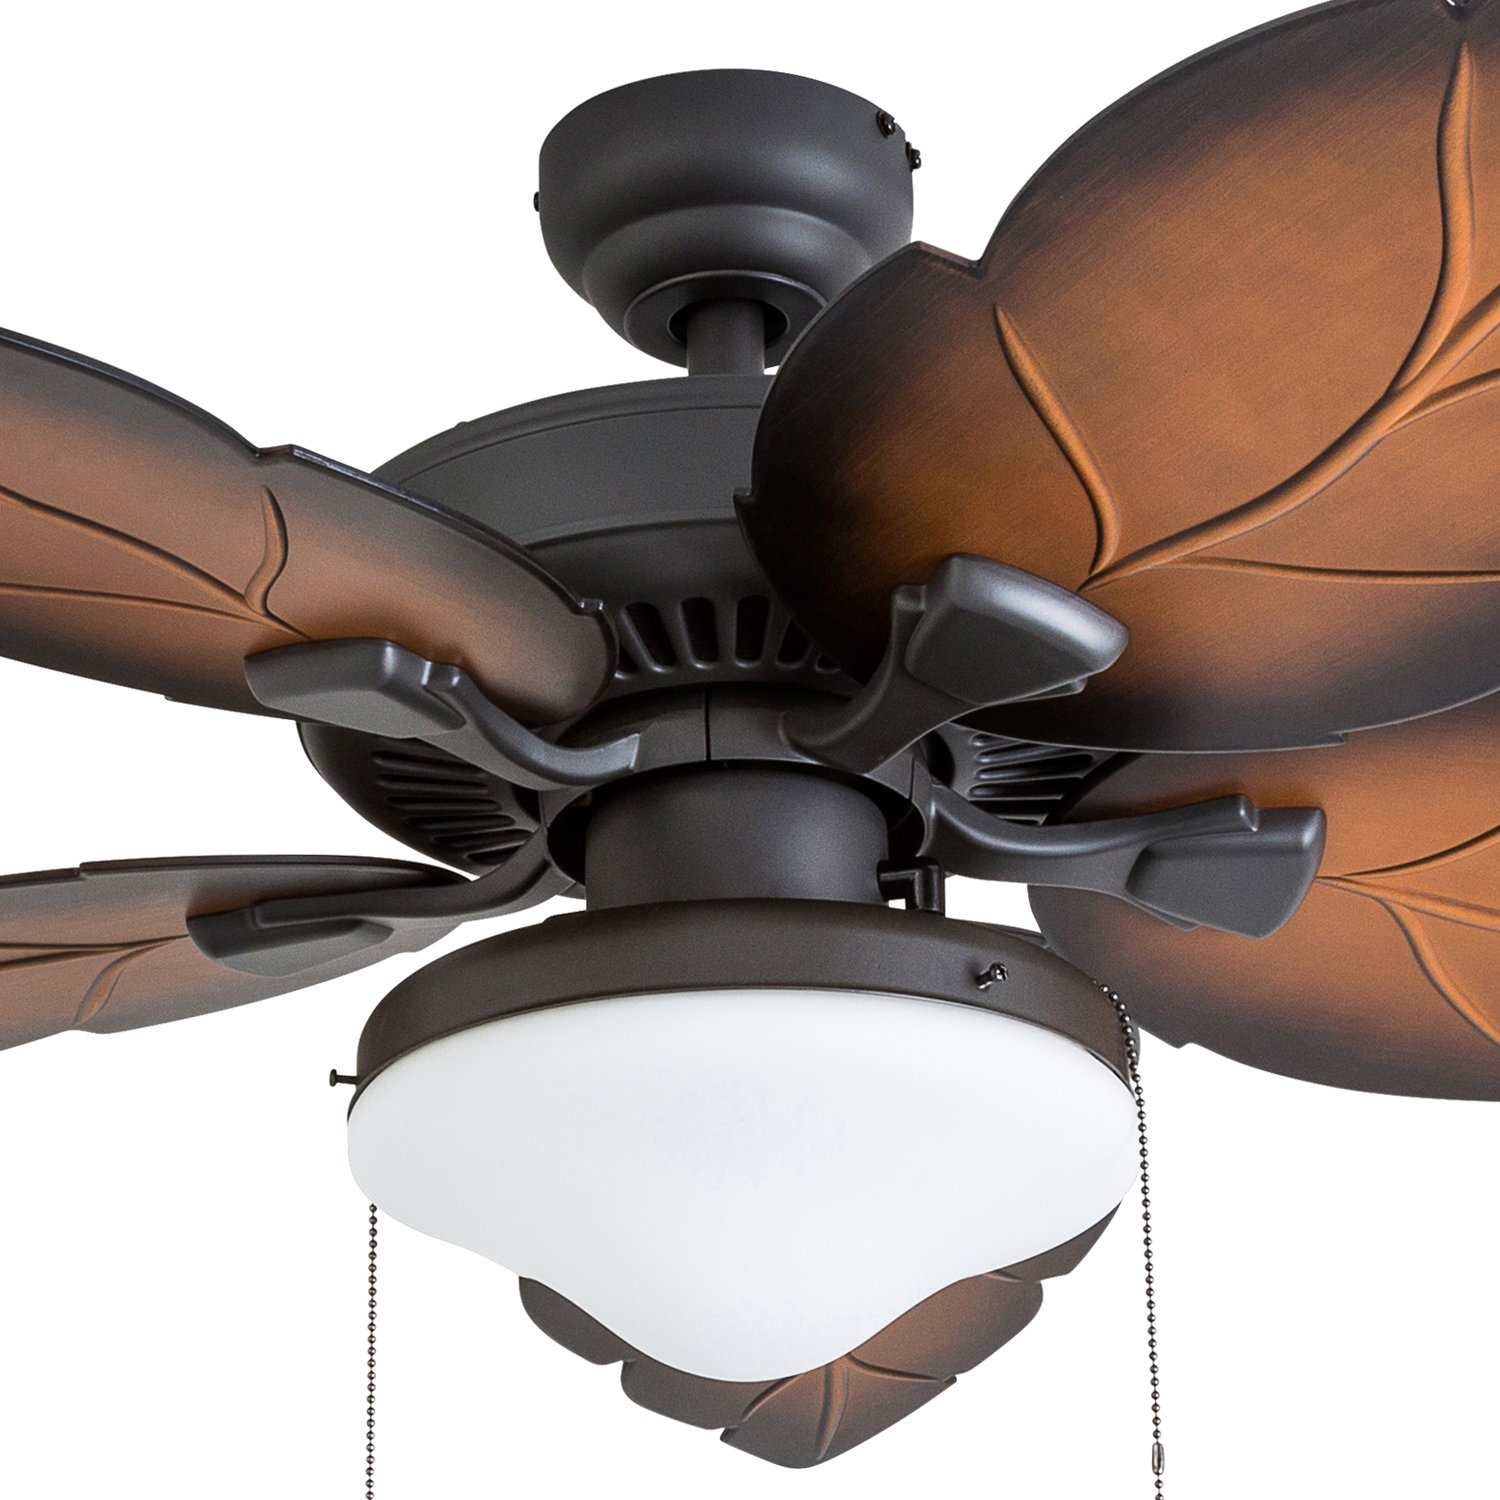 Prominence Home 50772-01 Delray Tropical Ceiling Fan 3 Speed Remote , 52 , Mocha, Bronze